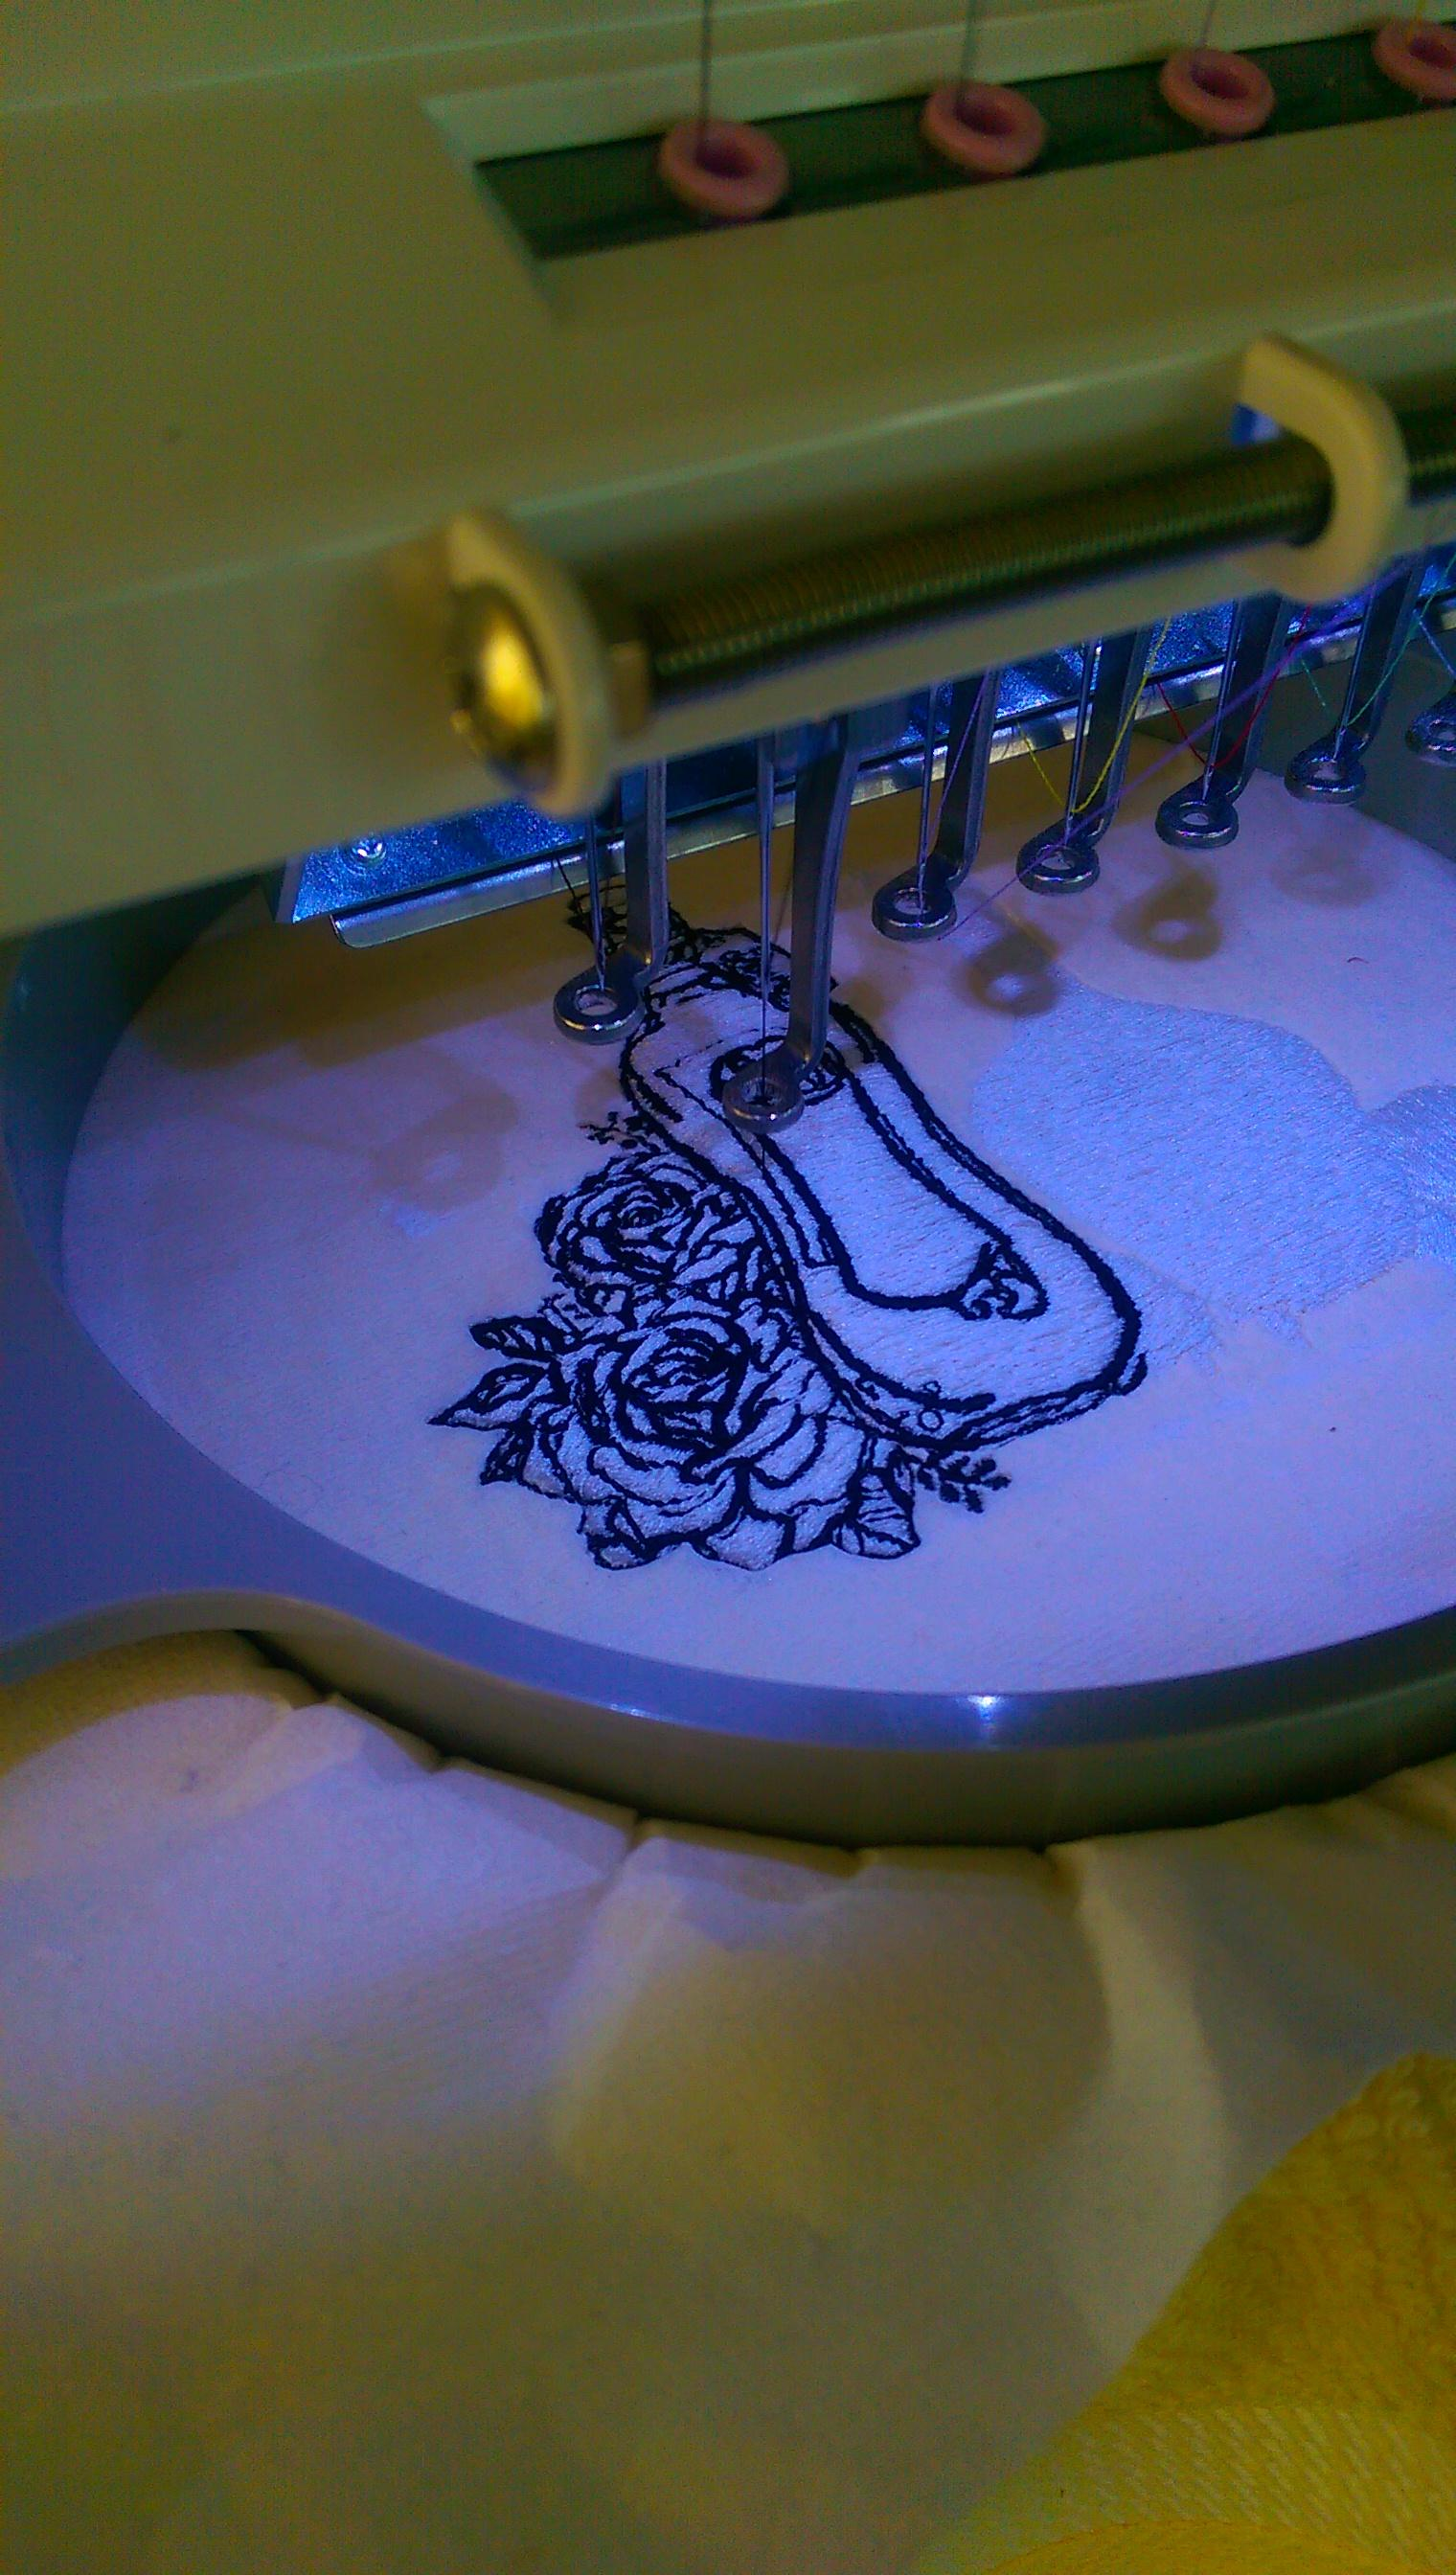 Bottles embroidery design in work